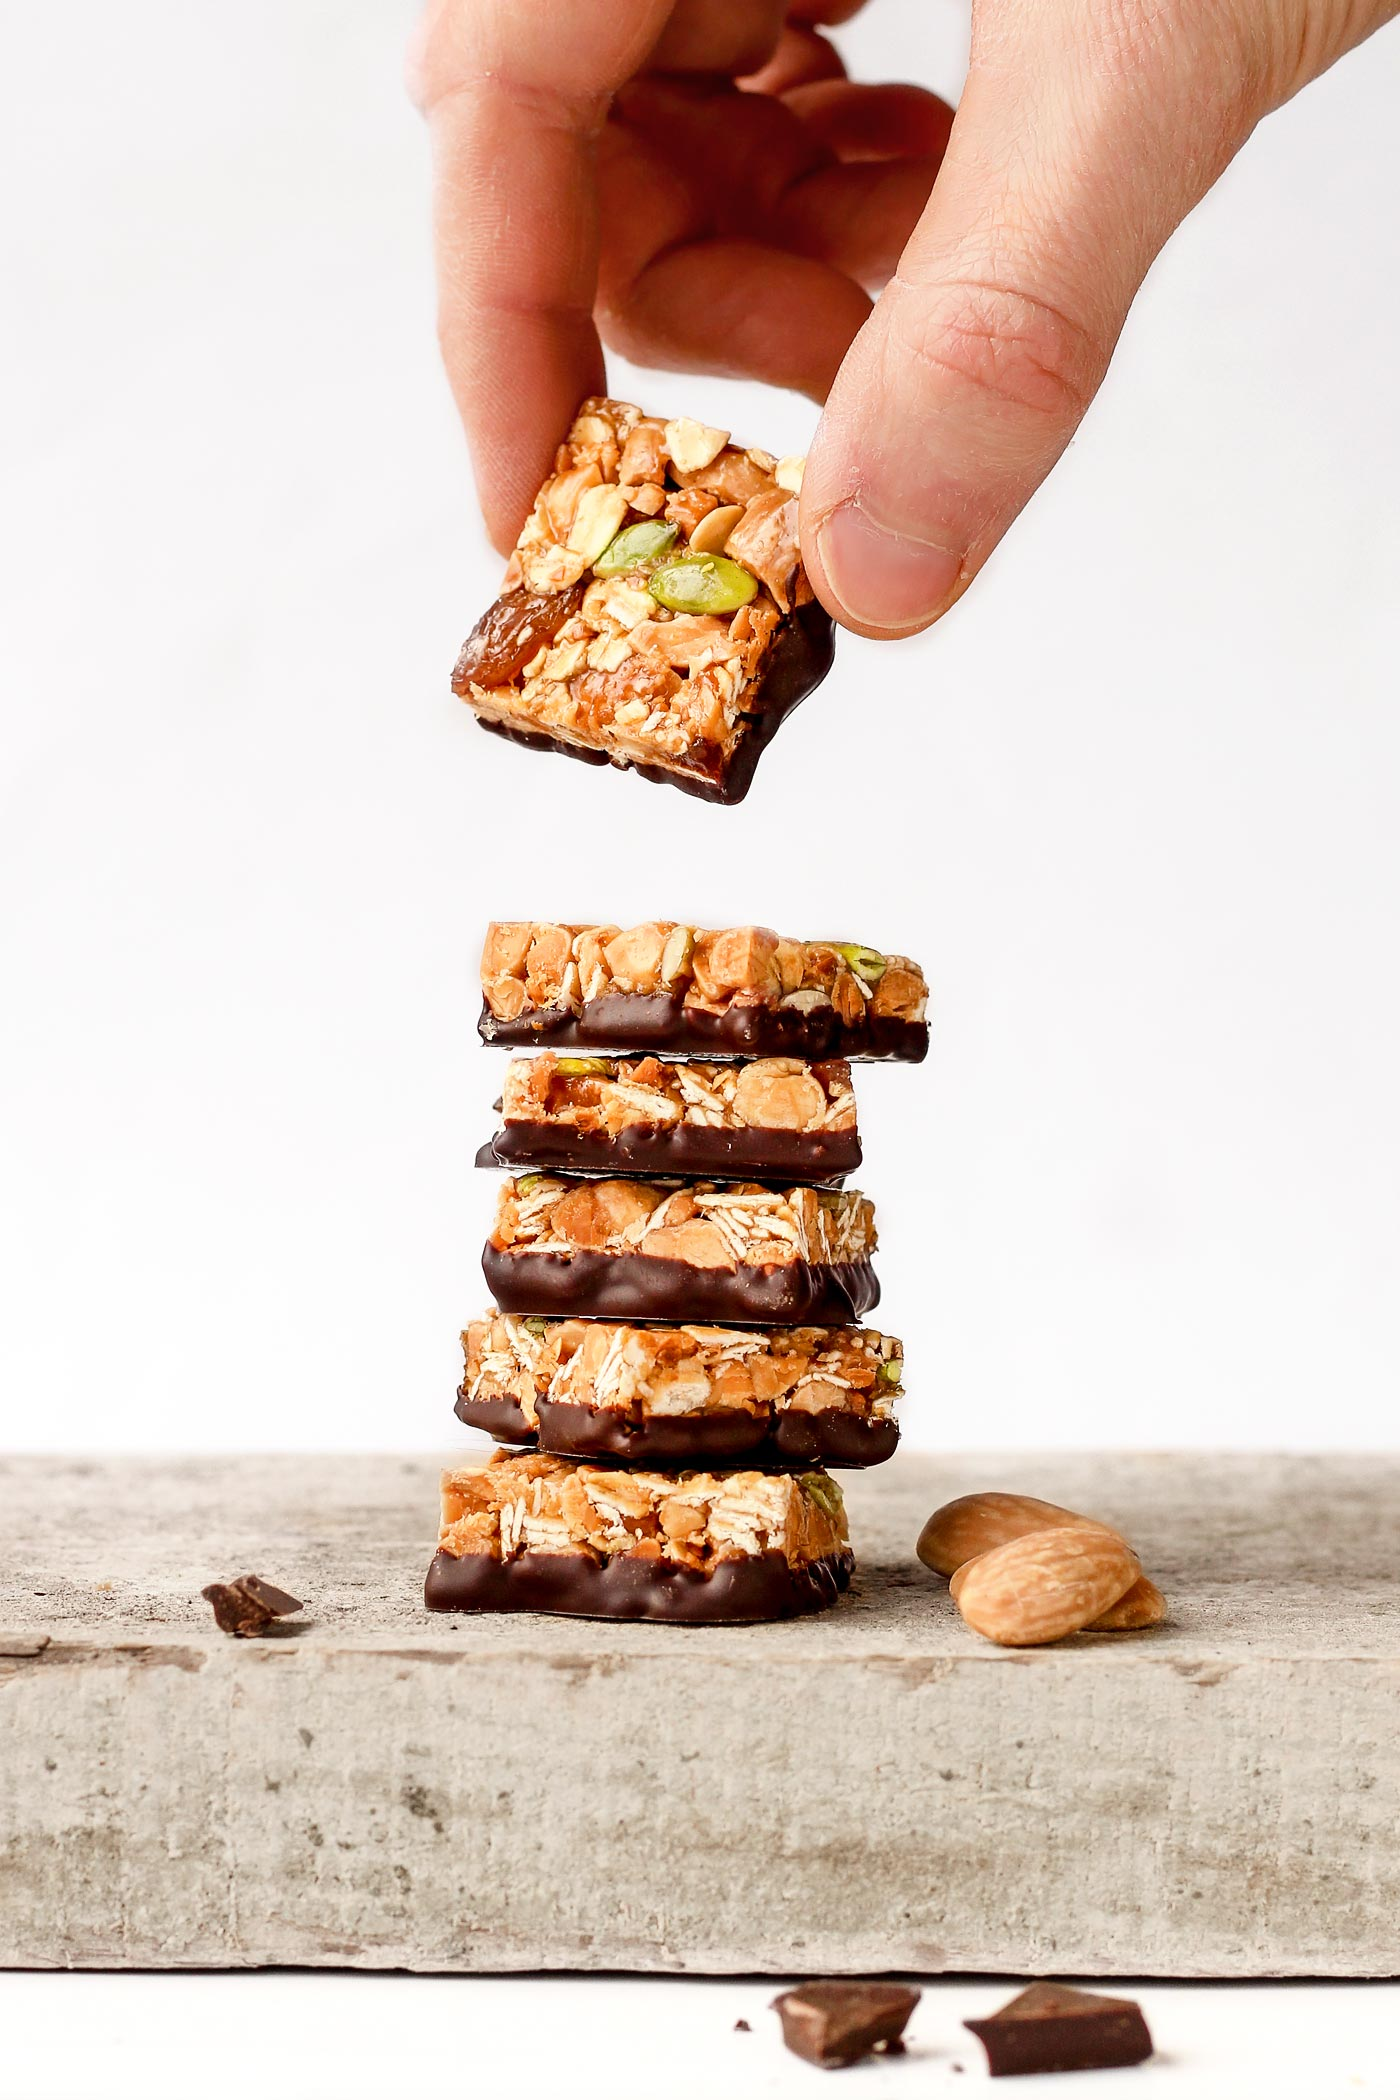 Raisin and Almond Snack Squares